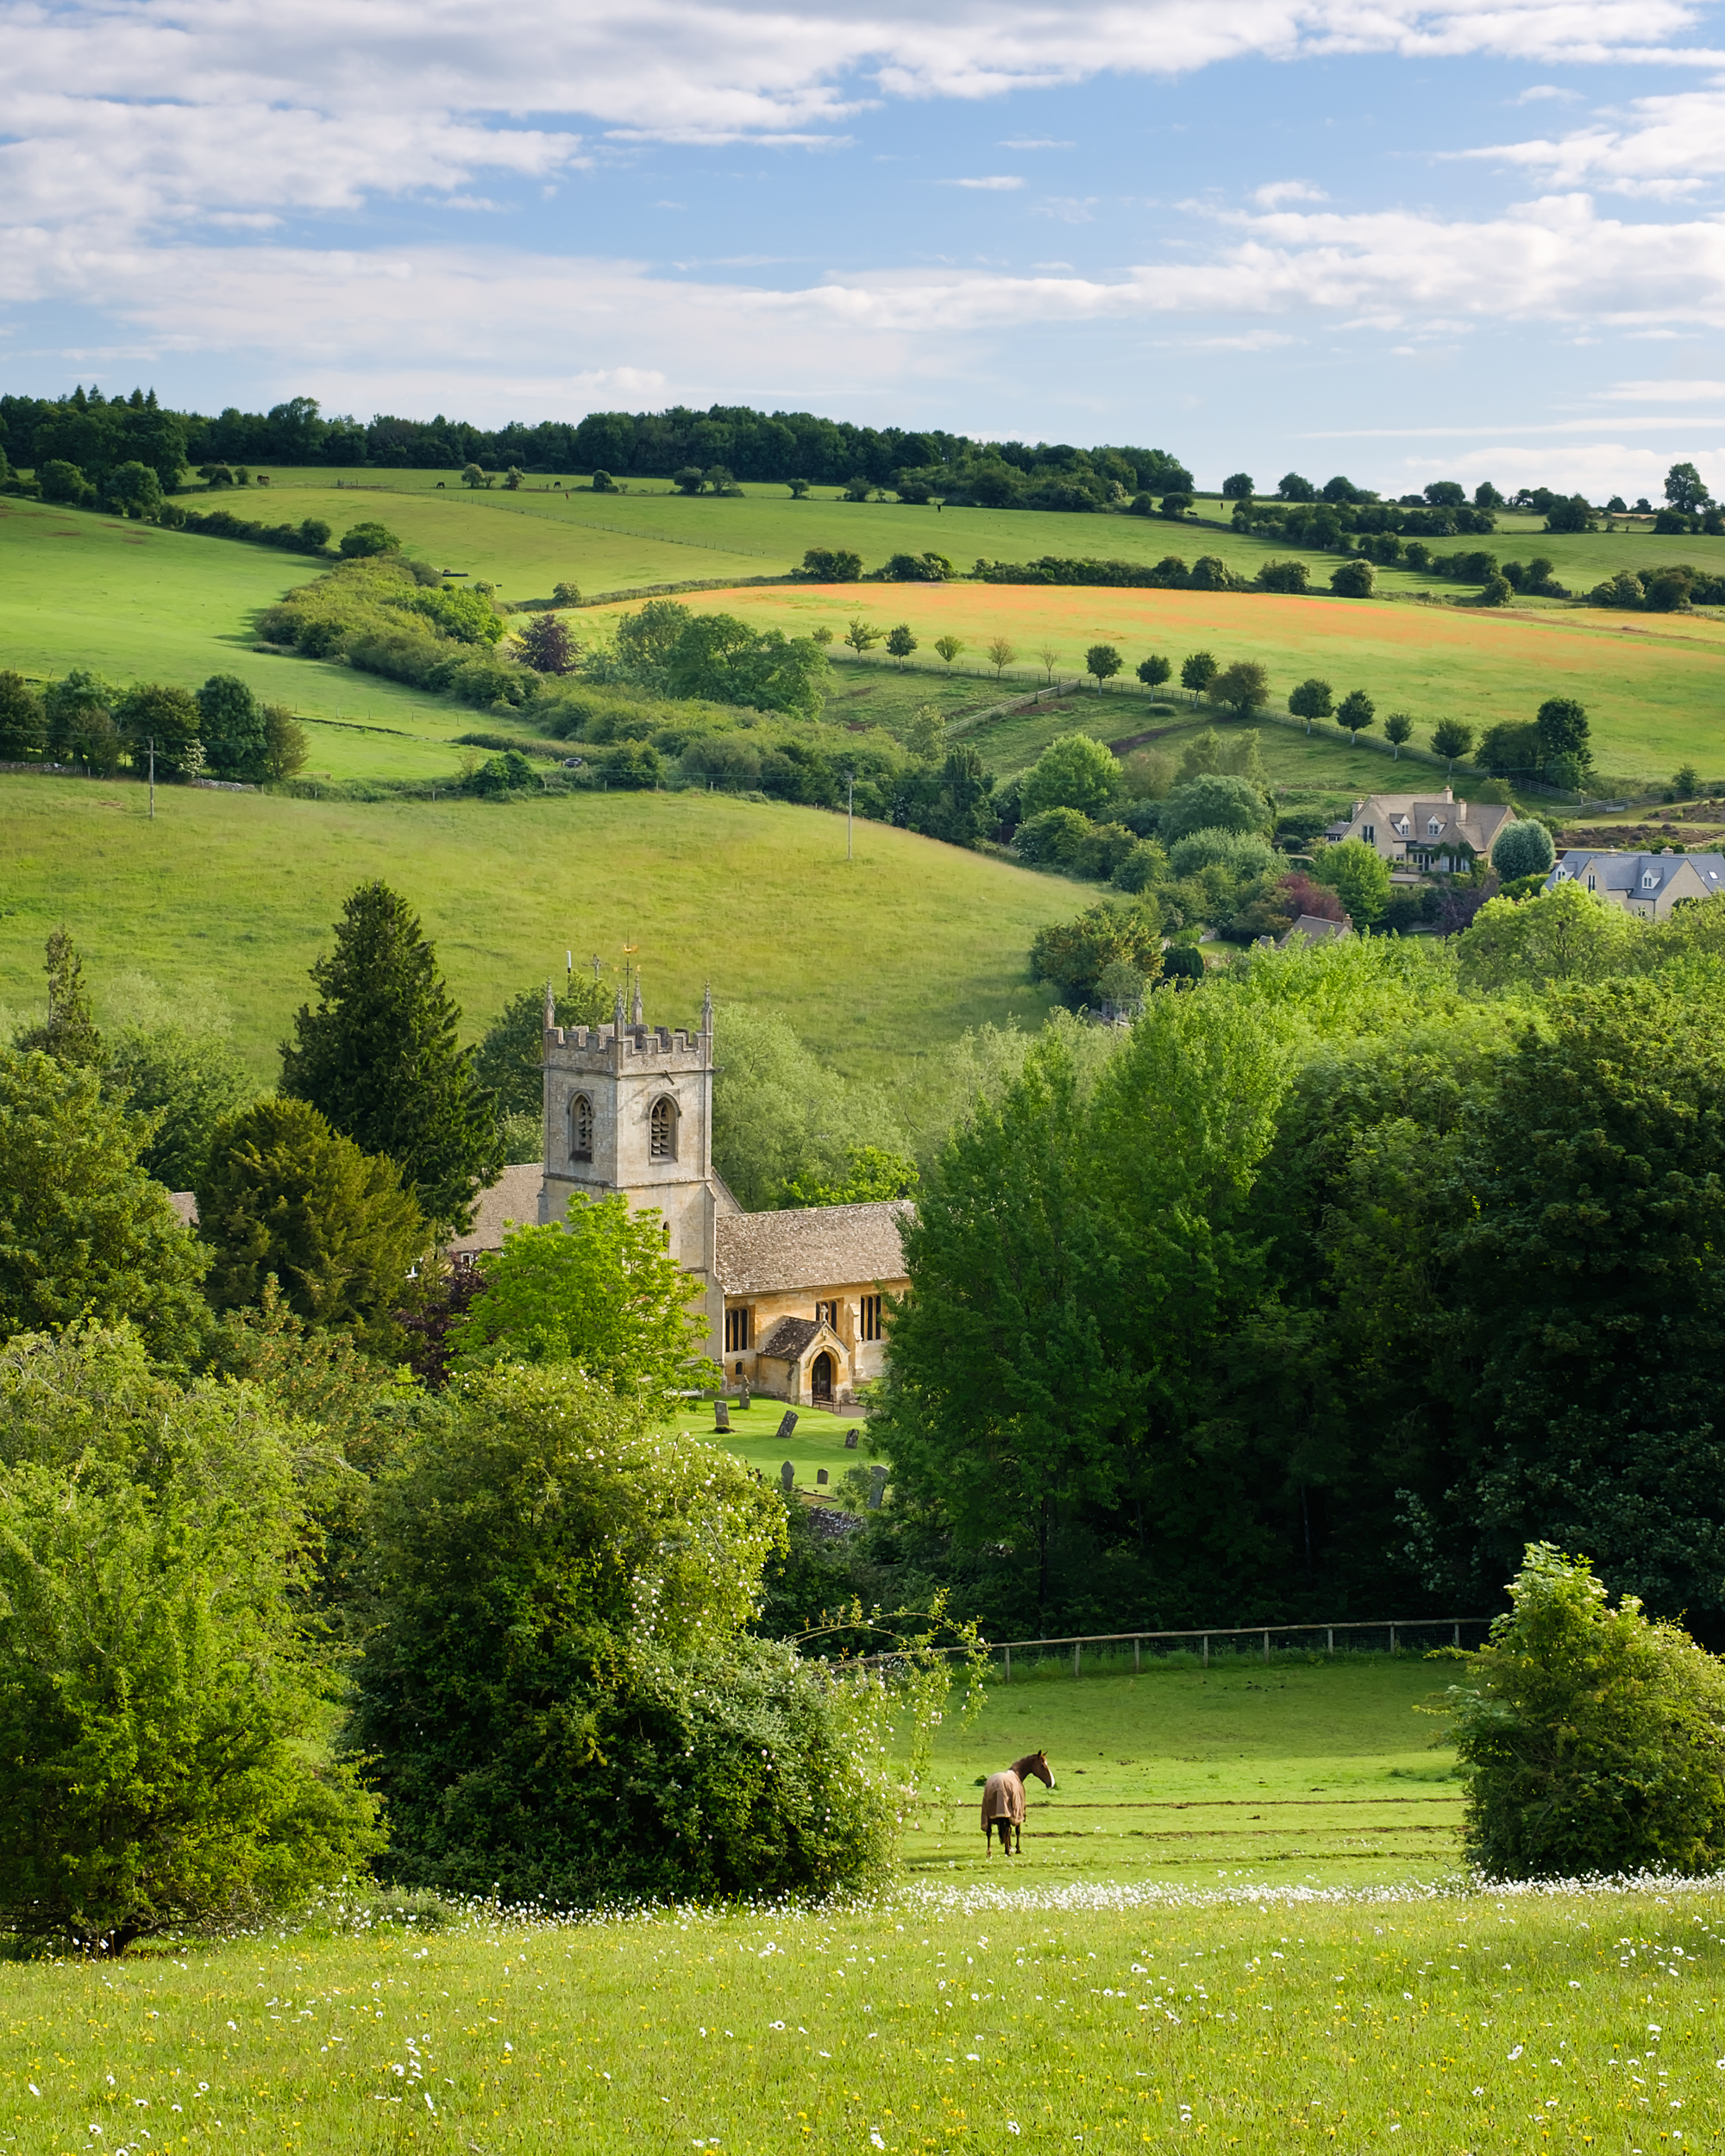 20190619_cotswolds-491-Edit.jpg